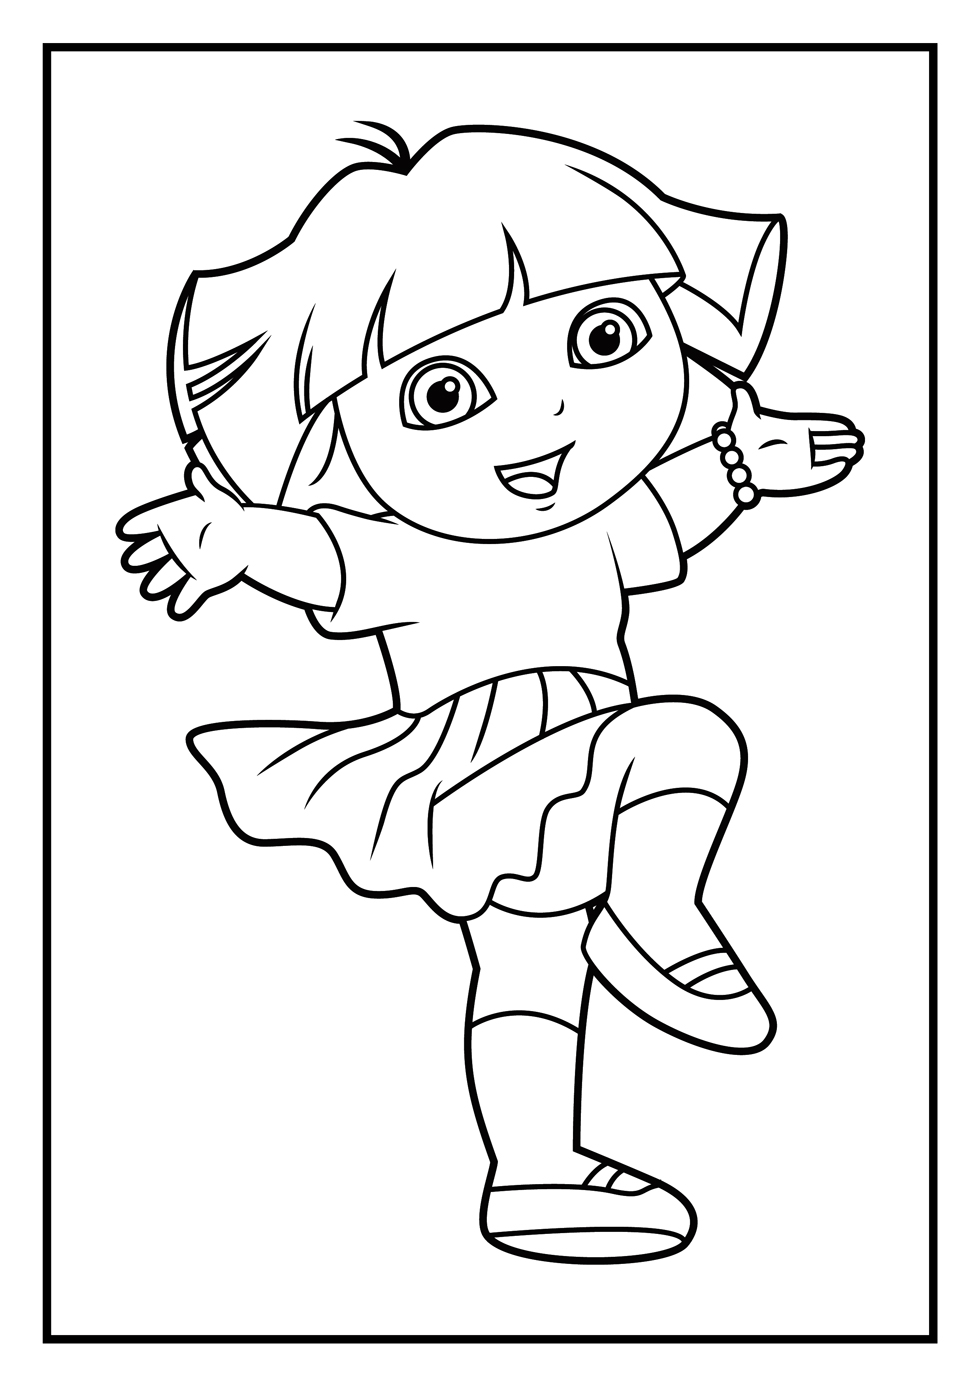 dora color sheets print download dora coloring pages to learn new things color dora sheets